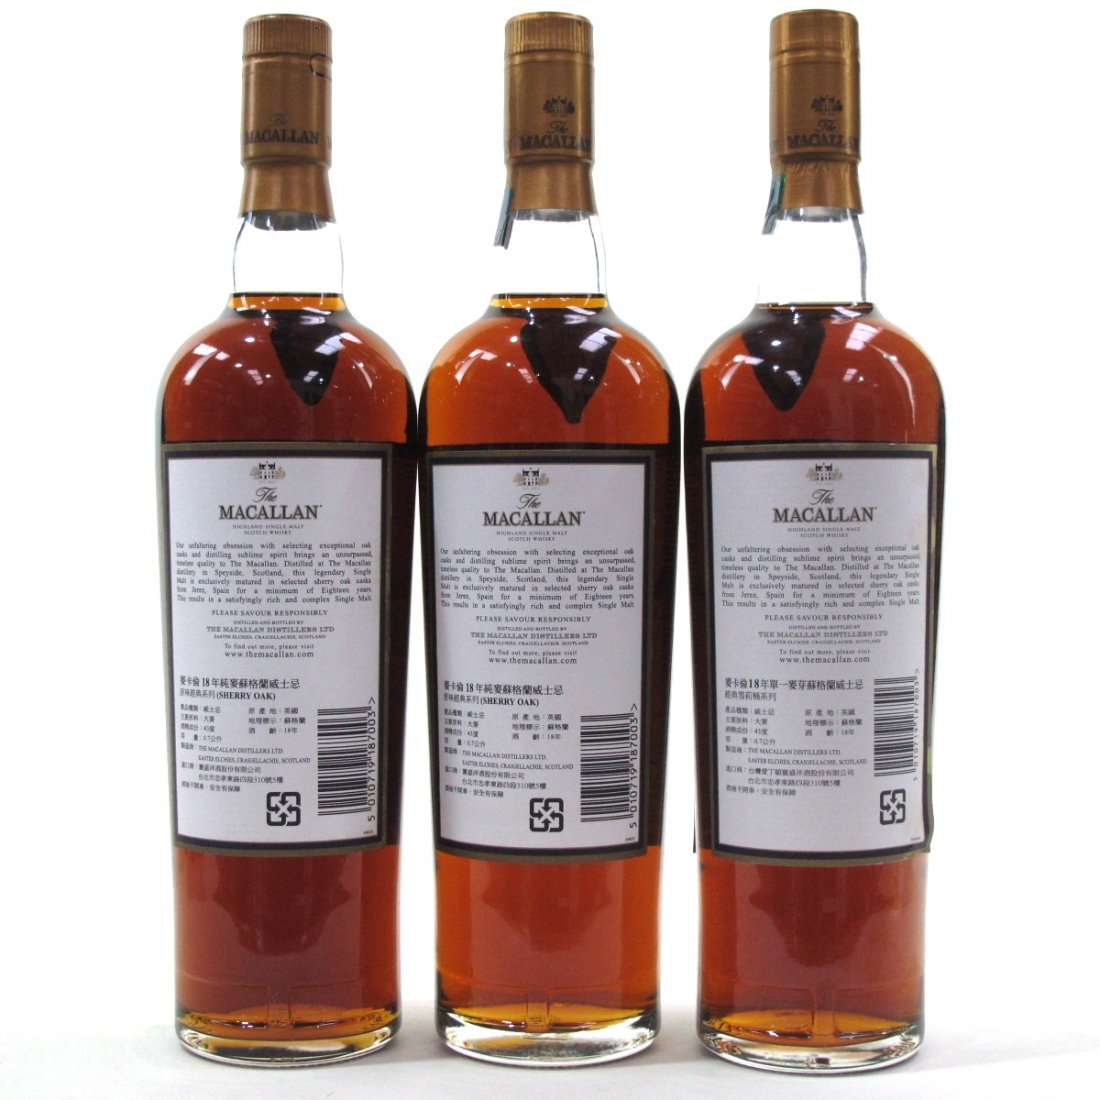 Macallan 18 Year Old 1990-1995 6 x 70cl